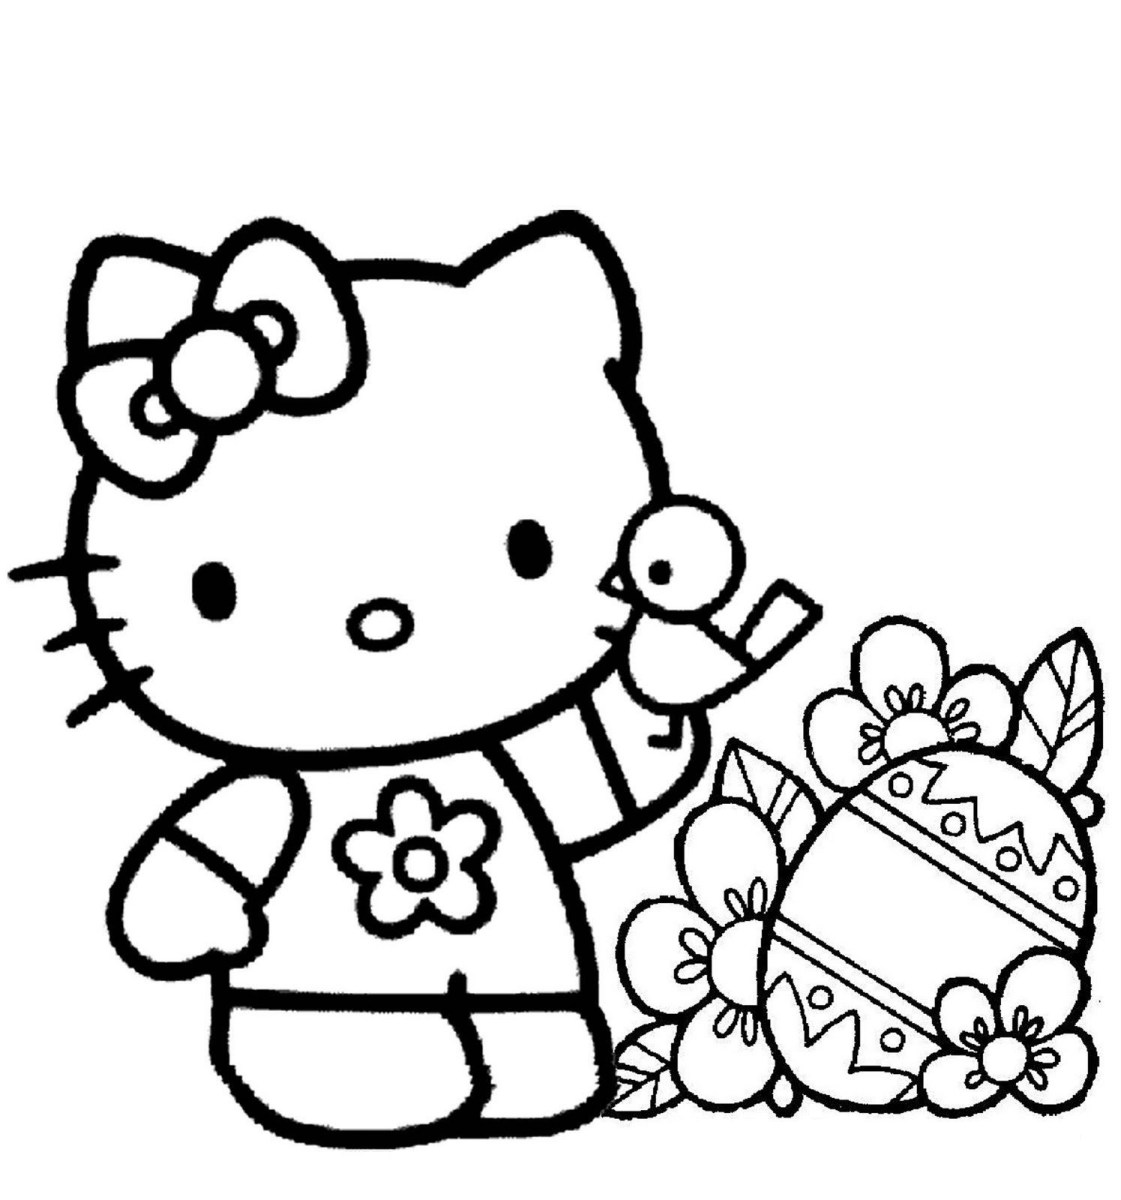 Hello Kitty Coloring Pages Printable Coloring Pages Of Hello Kitty And Friends For Free